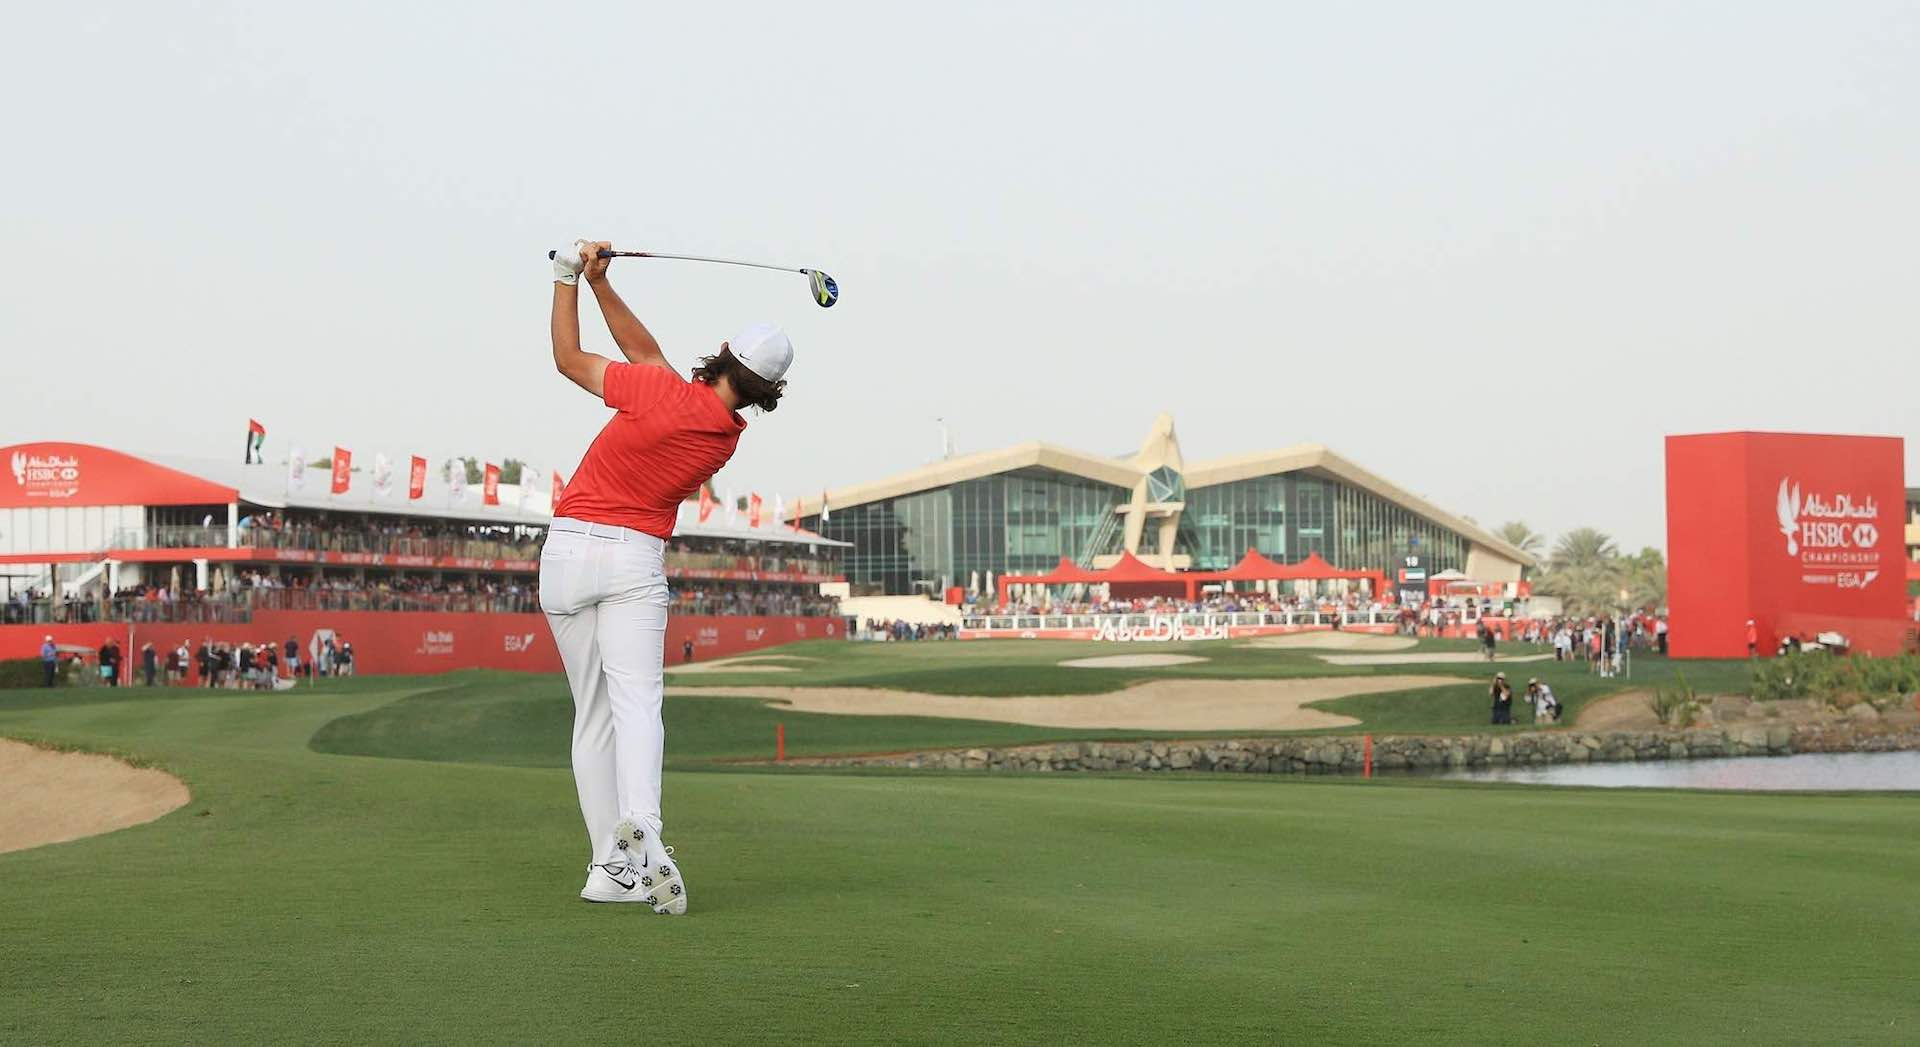 Troon International impresses on the world stage